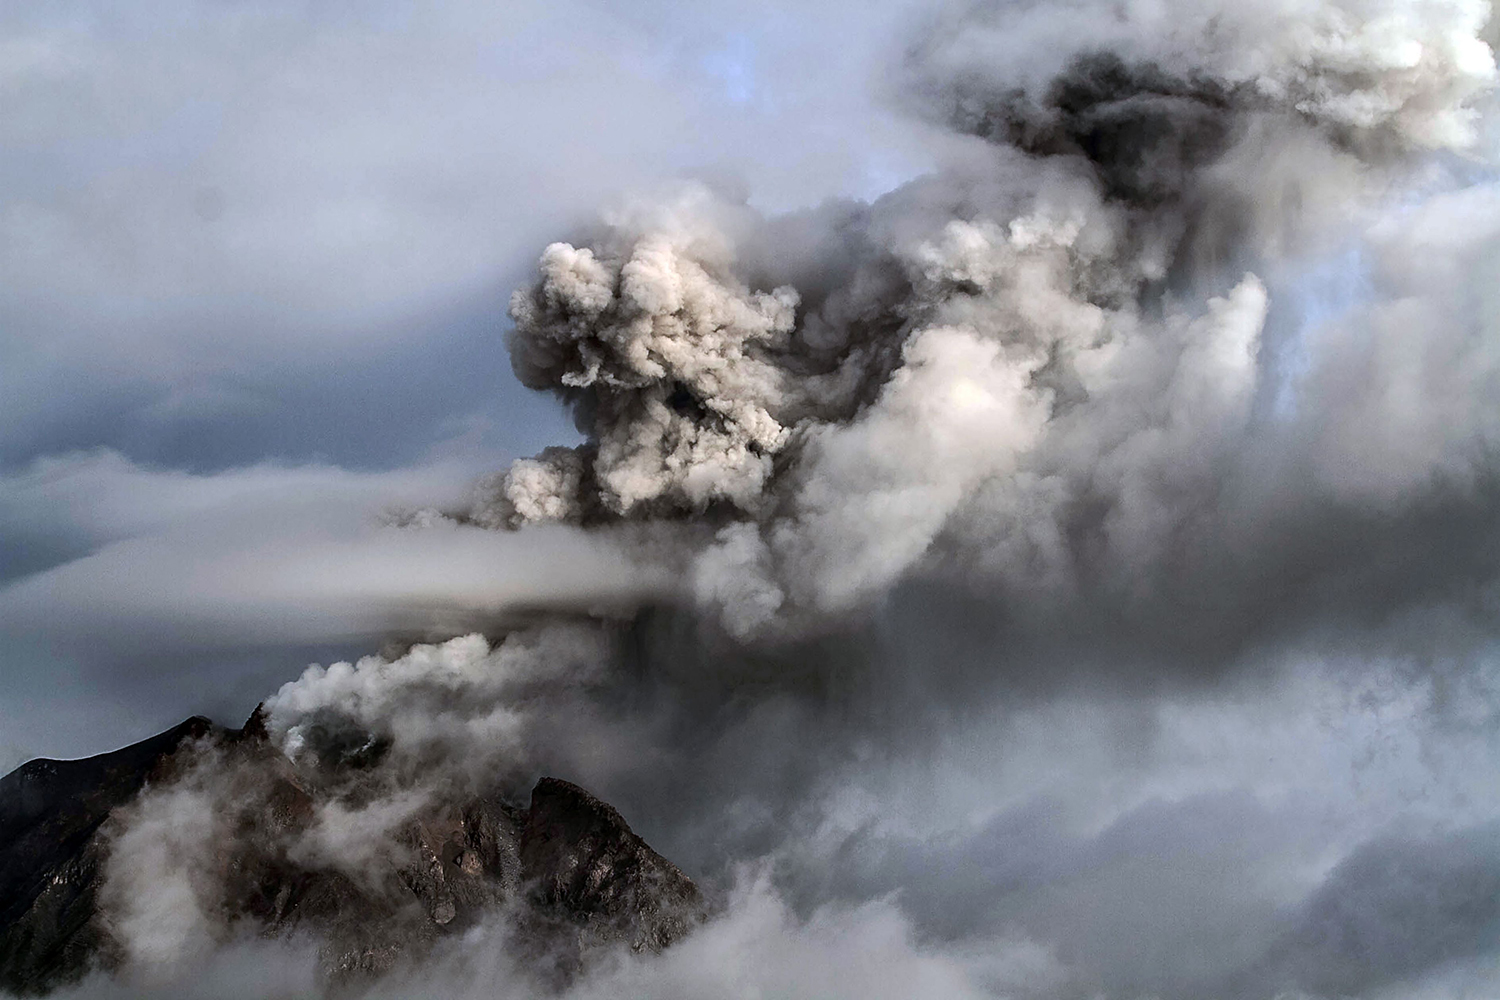 TOPSHOT - Mount Sinabung volcano spews thick volcanic ash as seen from Beganding village in Karo on February 7, 2017. Many residents in the area have been forced to relocate to other villages of Northern Sumatra at a safer distance from mount Sinabung volcano, one of the most active in Indonesia. / AFP PHOTO / STR / TT / kod 444